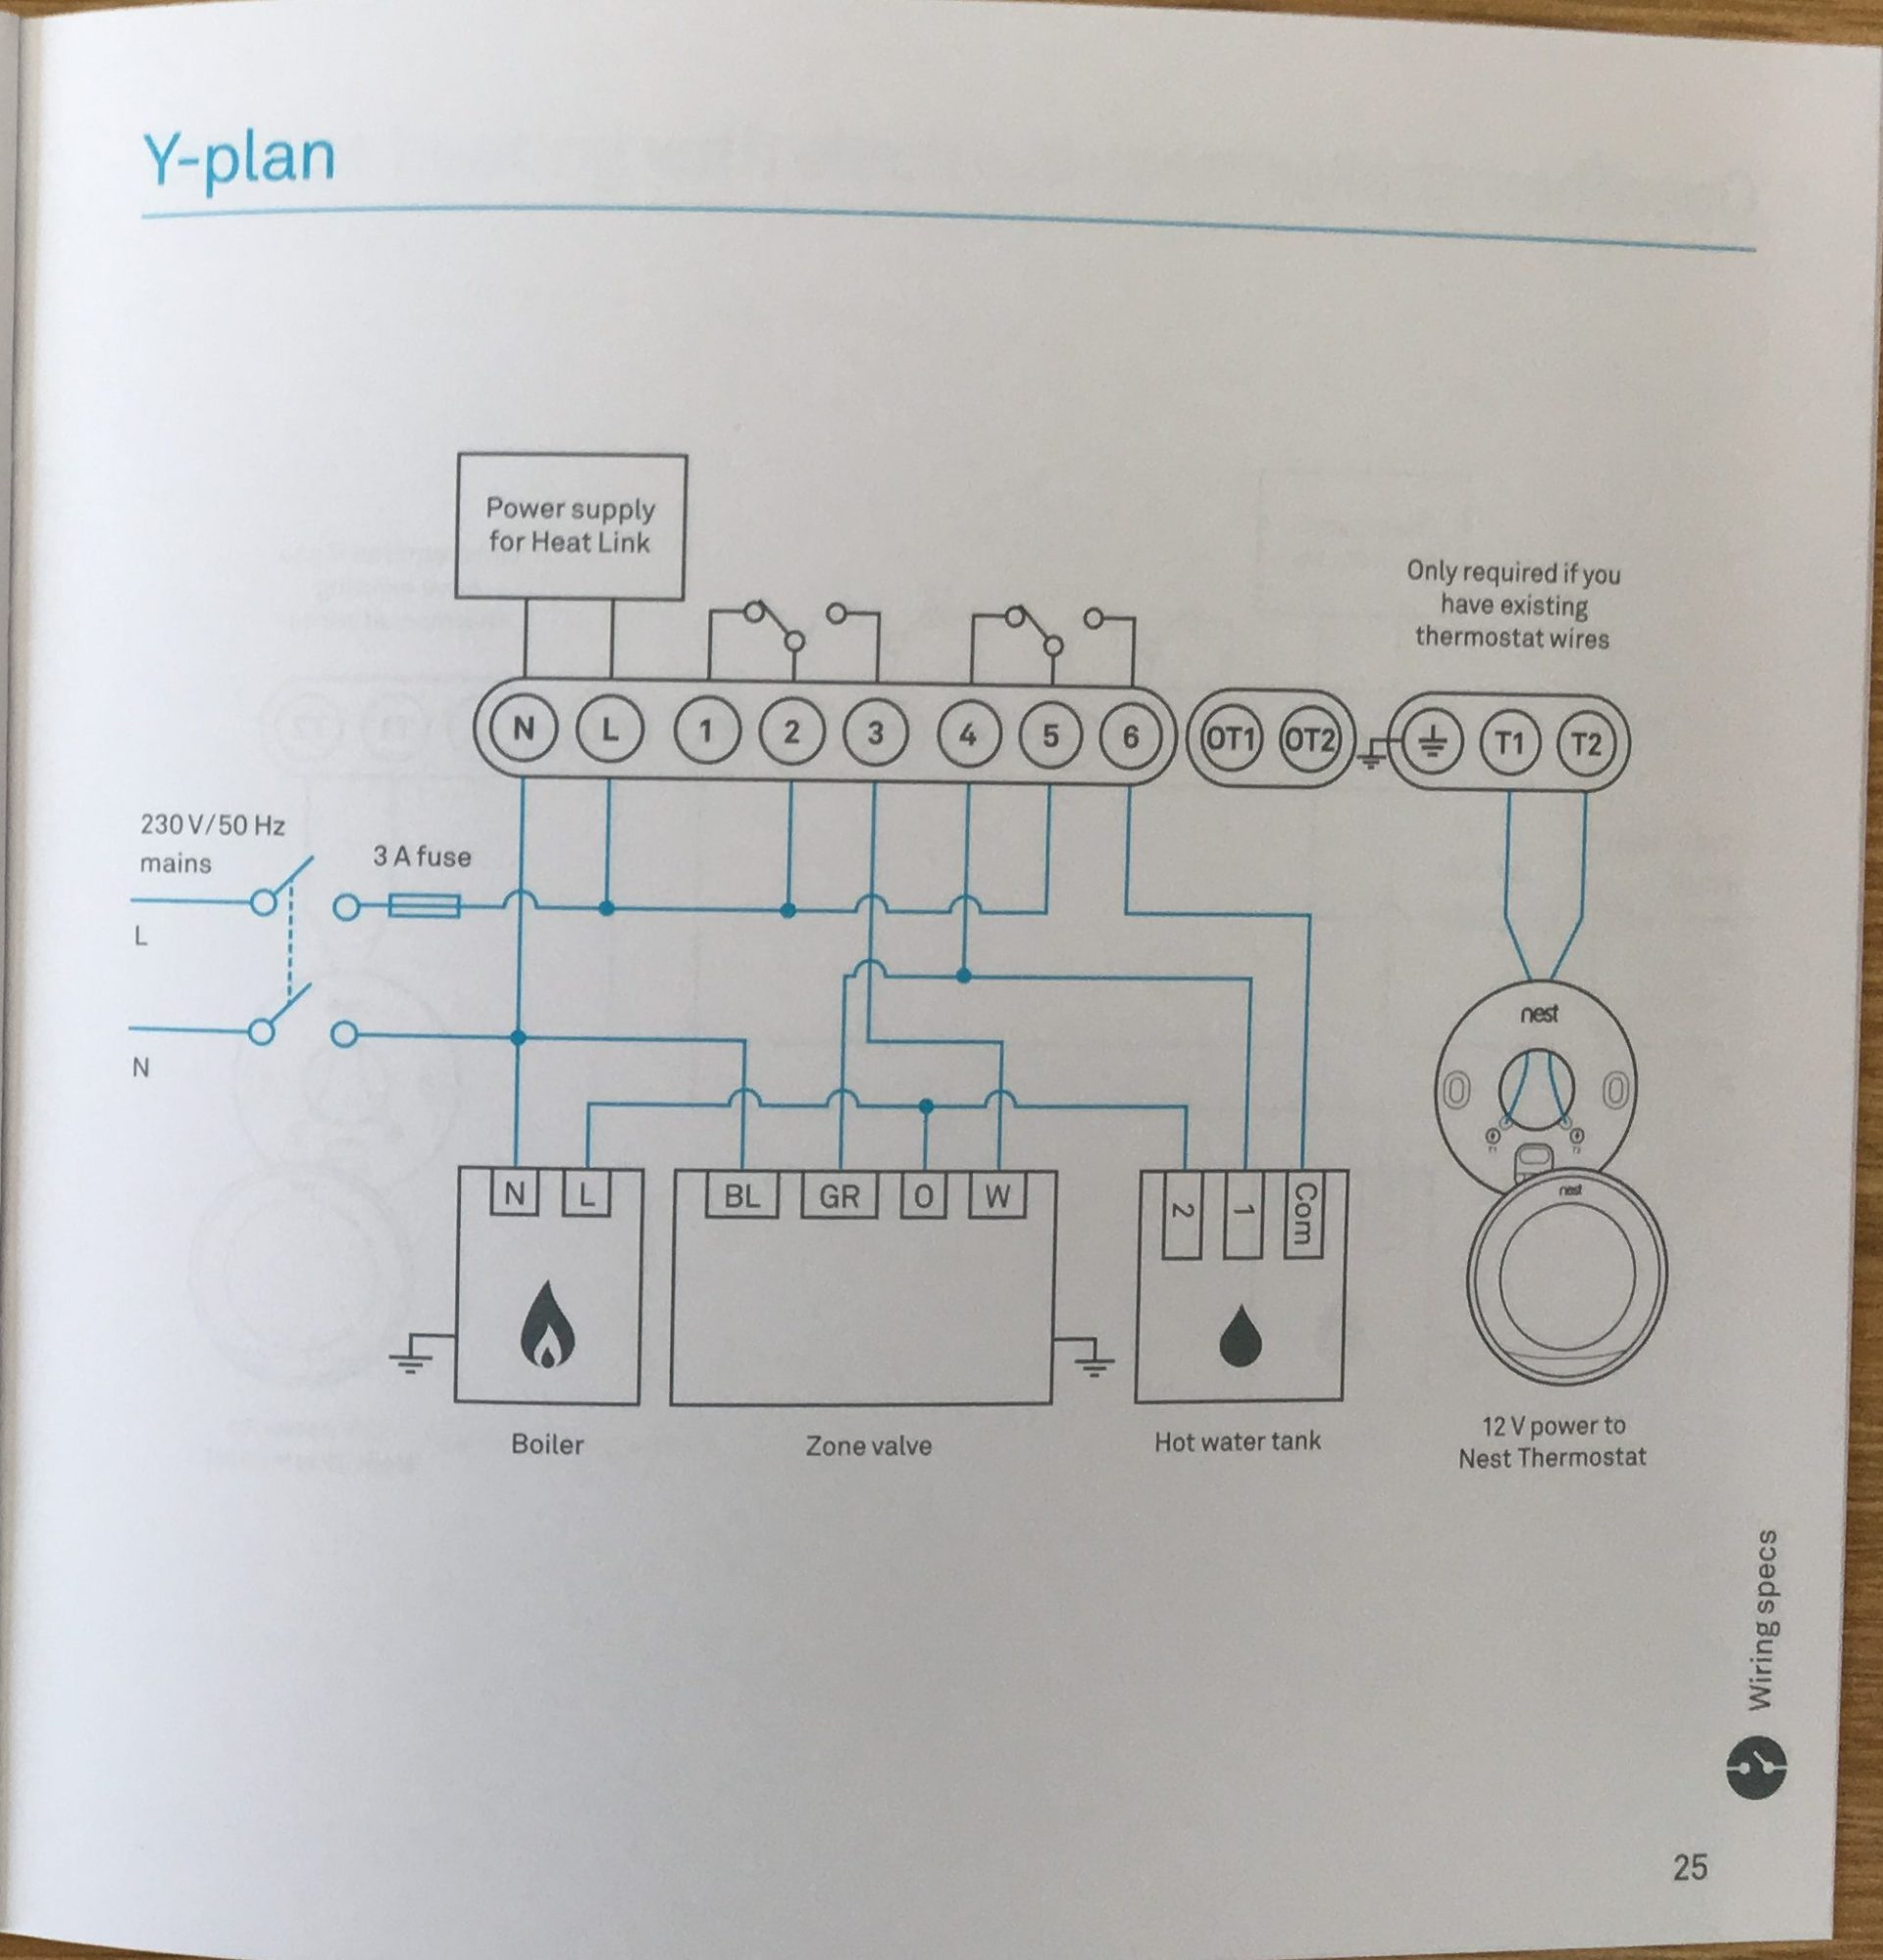 How To Install The Nest Learning Thermostat (3Rd Gen) In A Y-Plan - Nest Thermostat Wiring Diagram To Old Heater